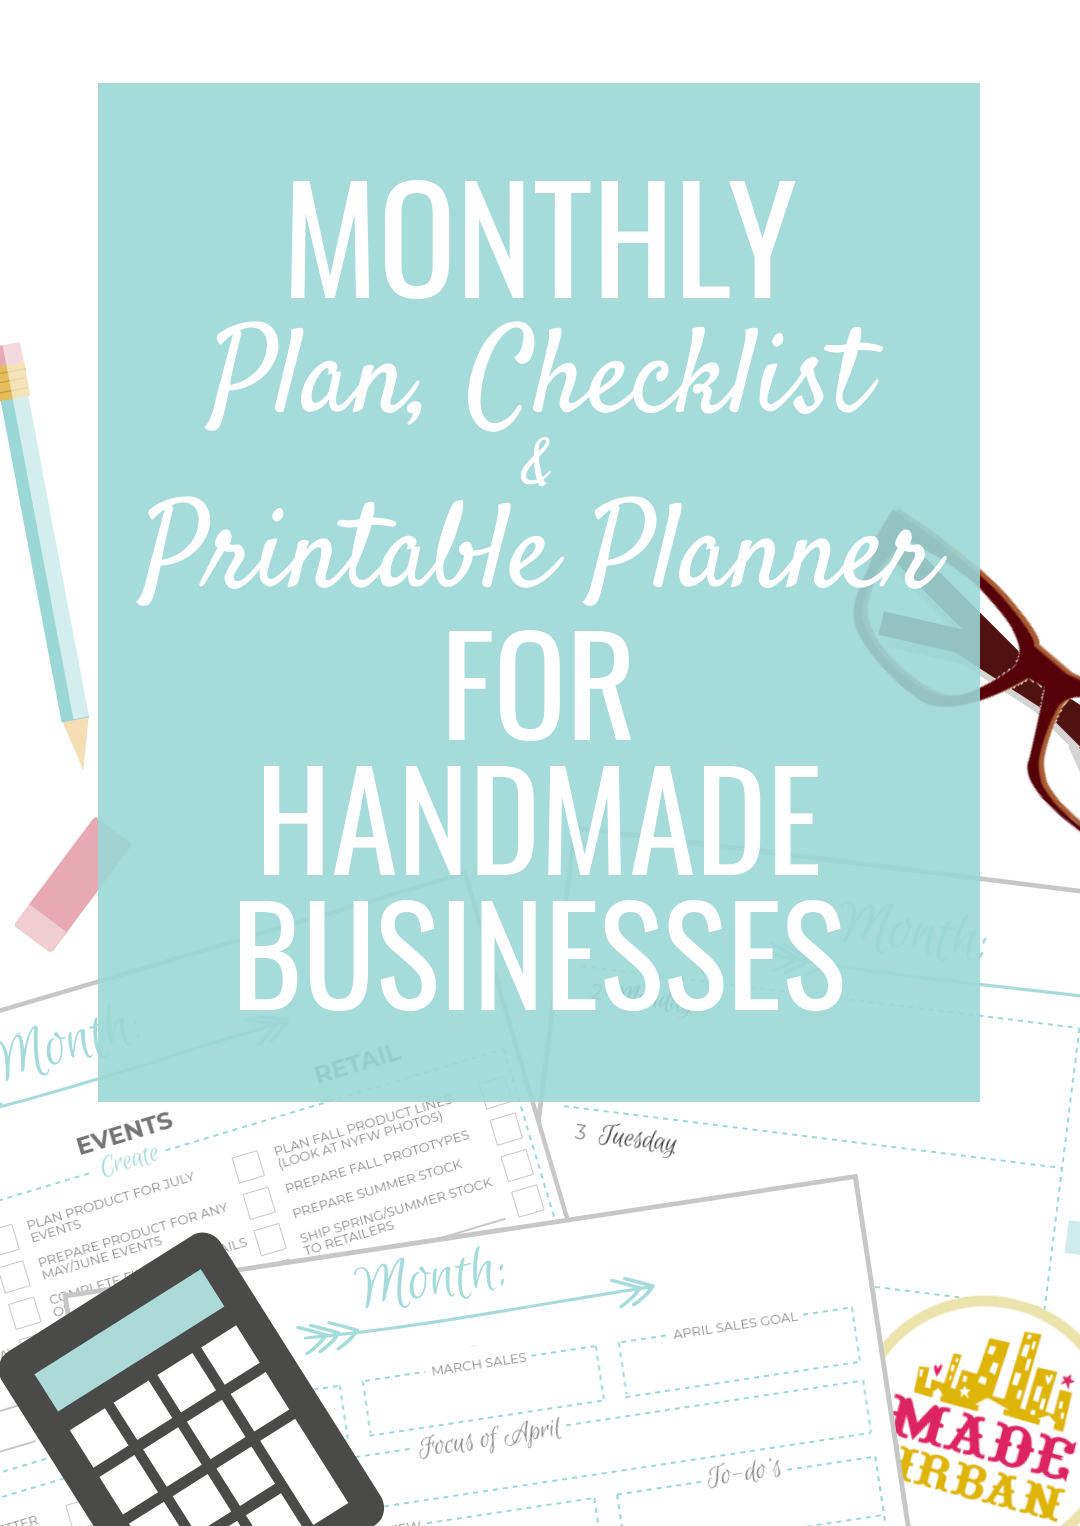 A lot of handmade business owners spend too much time creating and not enough time marketing and selling. Creating, marketing and selling are all required to run a handmade business but it can be overwhelming trying to figure out what to work on and when. This article shares what you should be working on now to make sales this month, next month and beyond. Plus there's a free checklist to follow each month and printable planner to keep track of tasks.